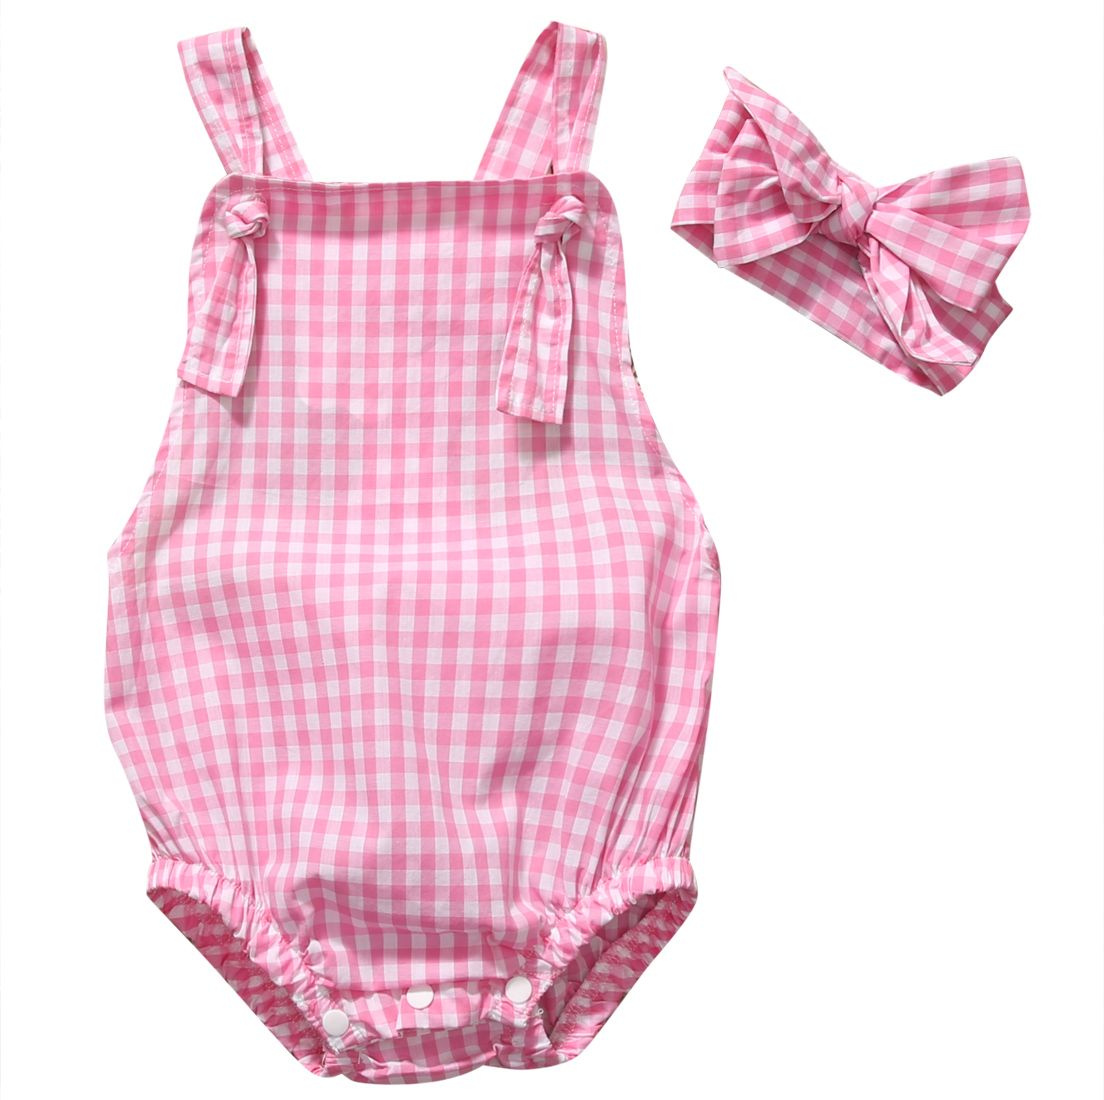 2PCS Set Pink Plaid Romper Clothes Cute Newborn Baby Girls Summer Sleeveless Halter Bebes Jumpsuit+Headband Outfit Sunsuit fashion 2pcs set newborn baby girls jumpsuit toddler girls flower pattern outfit clothes romper bodysuit pants